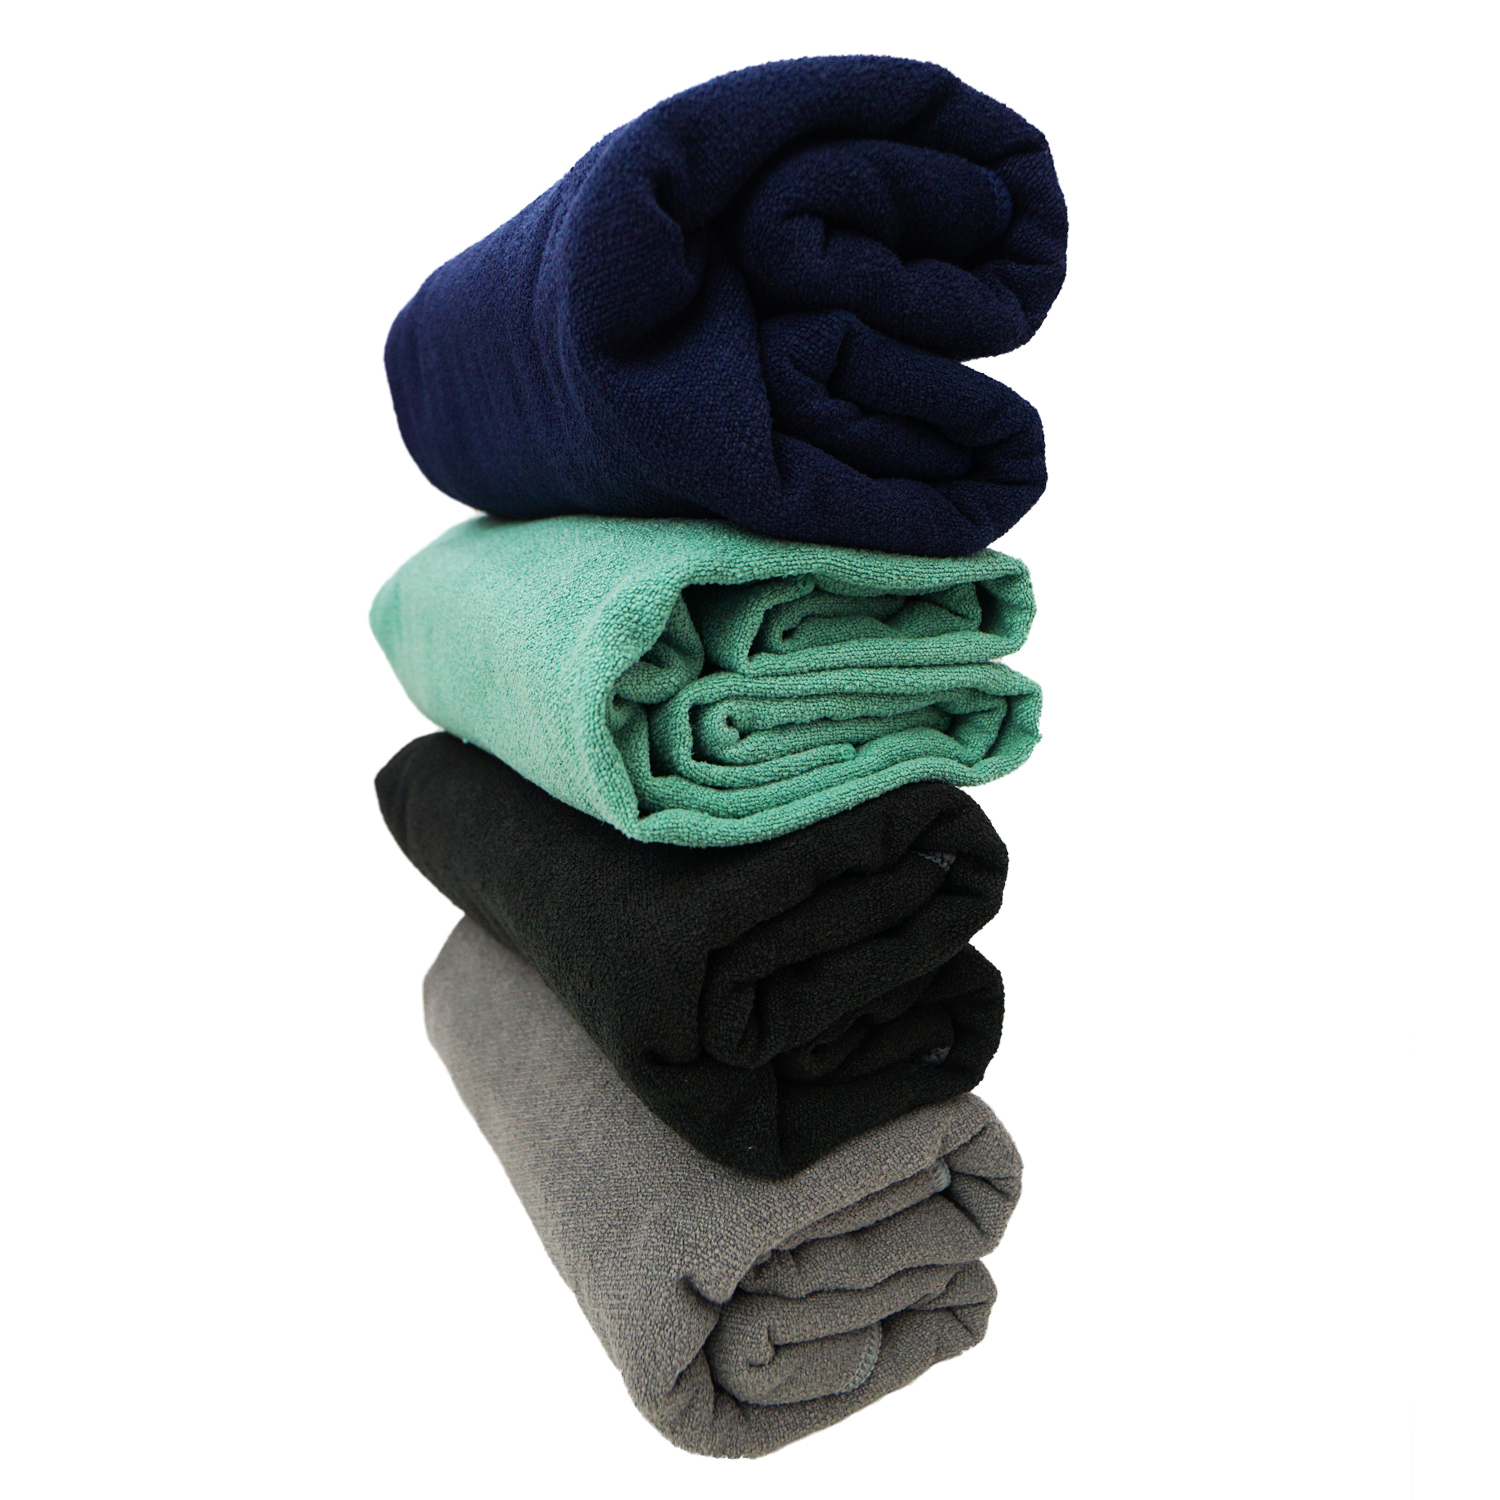 Yoga Direct Yoga Mat Towel